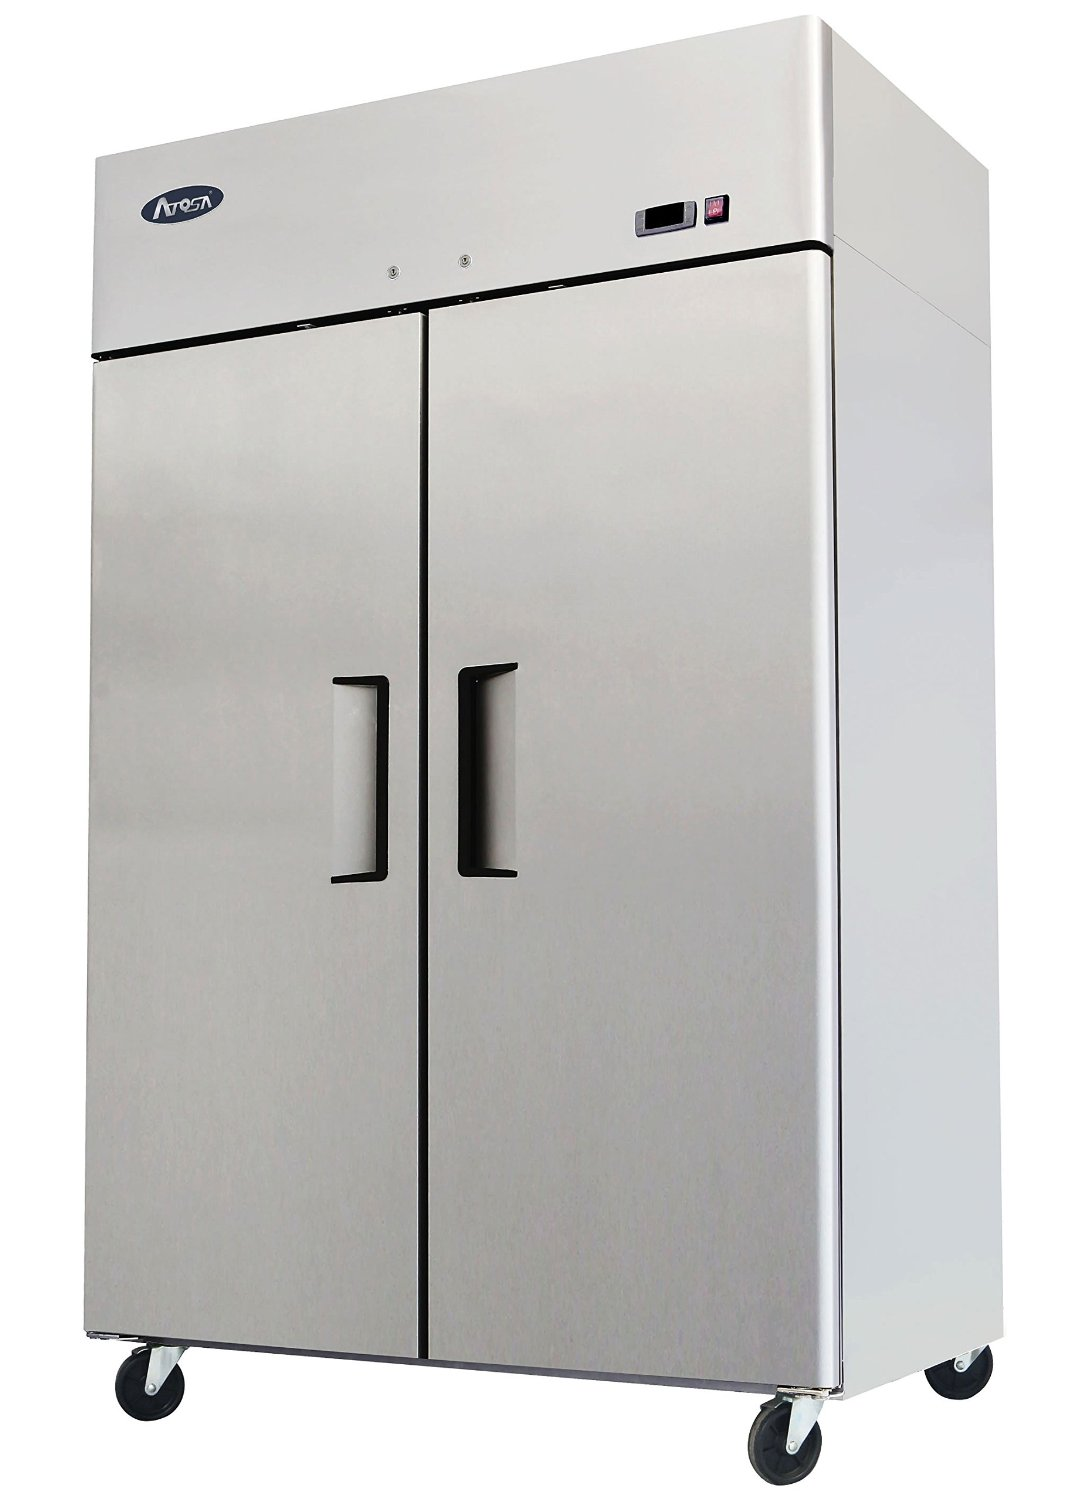 Big Stainless Steel Refrigerator